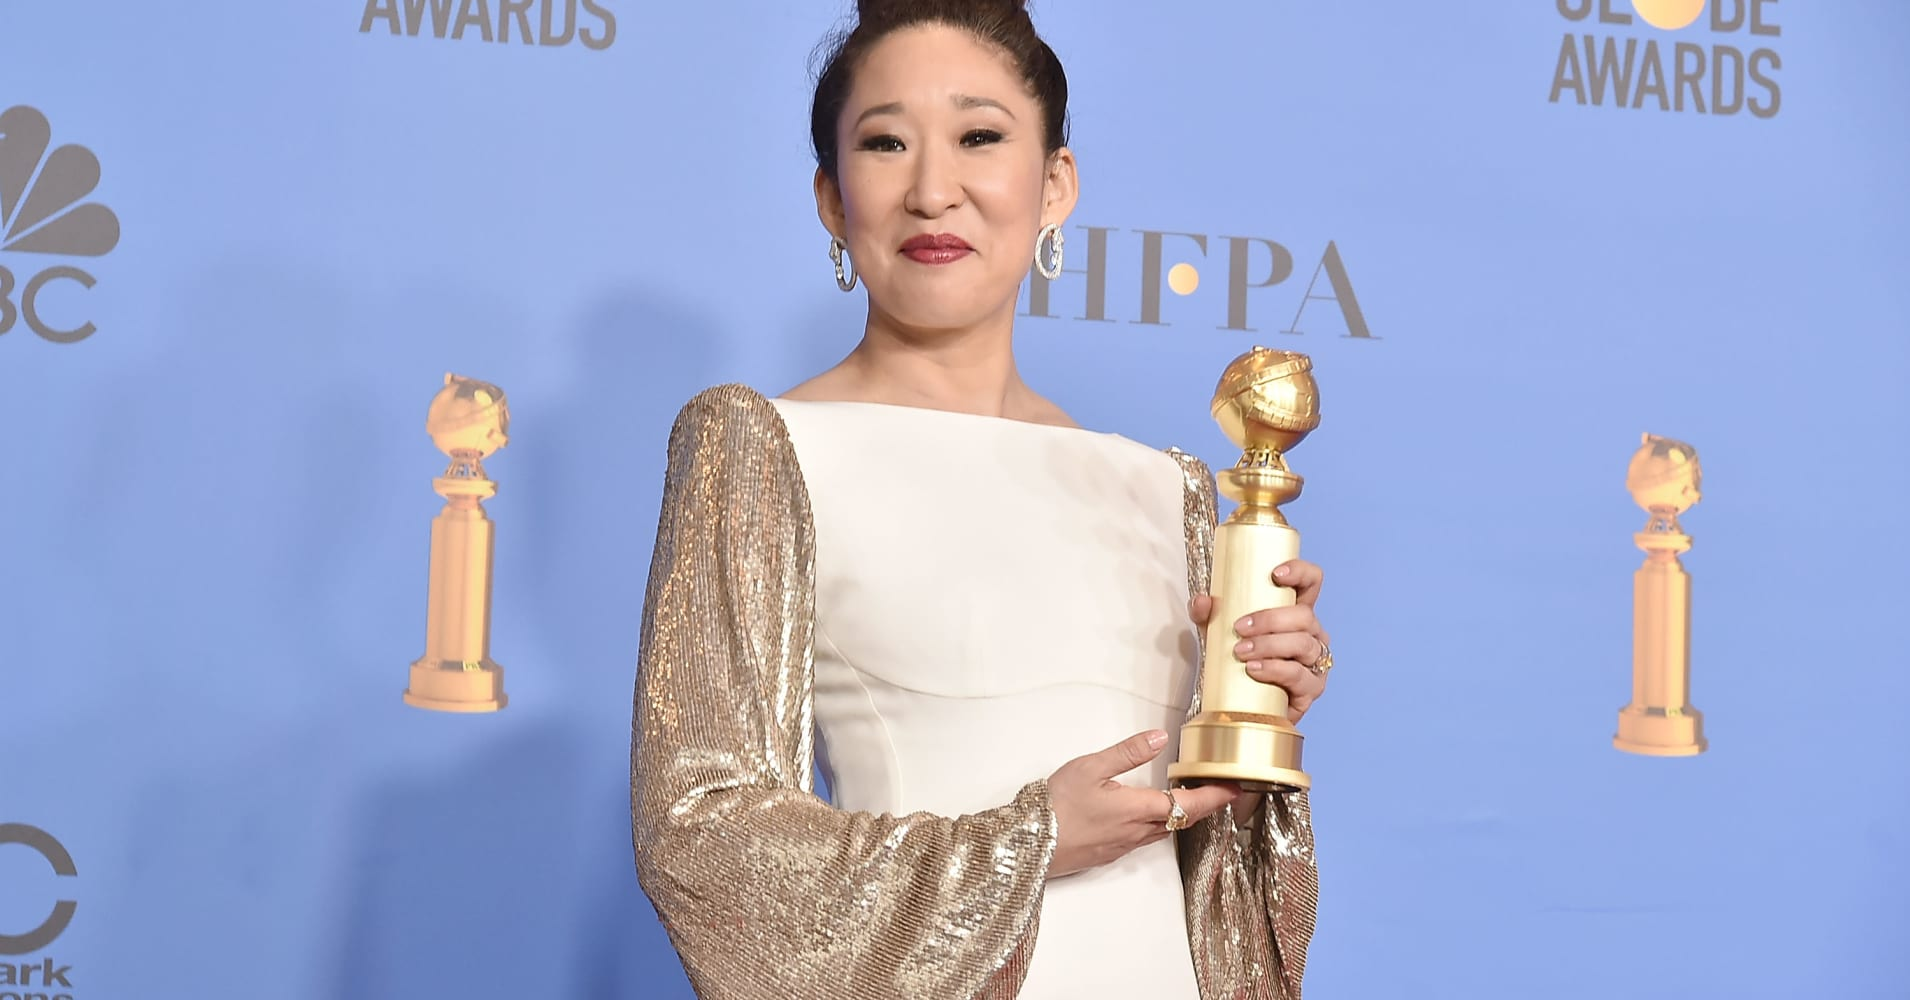 Sandra Oh attends the 76th Annual Golden Globe Awards - Press Room at The Beverly Hilton Hotel on January 6, 2019 in Beverly Hills, California.